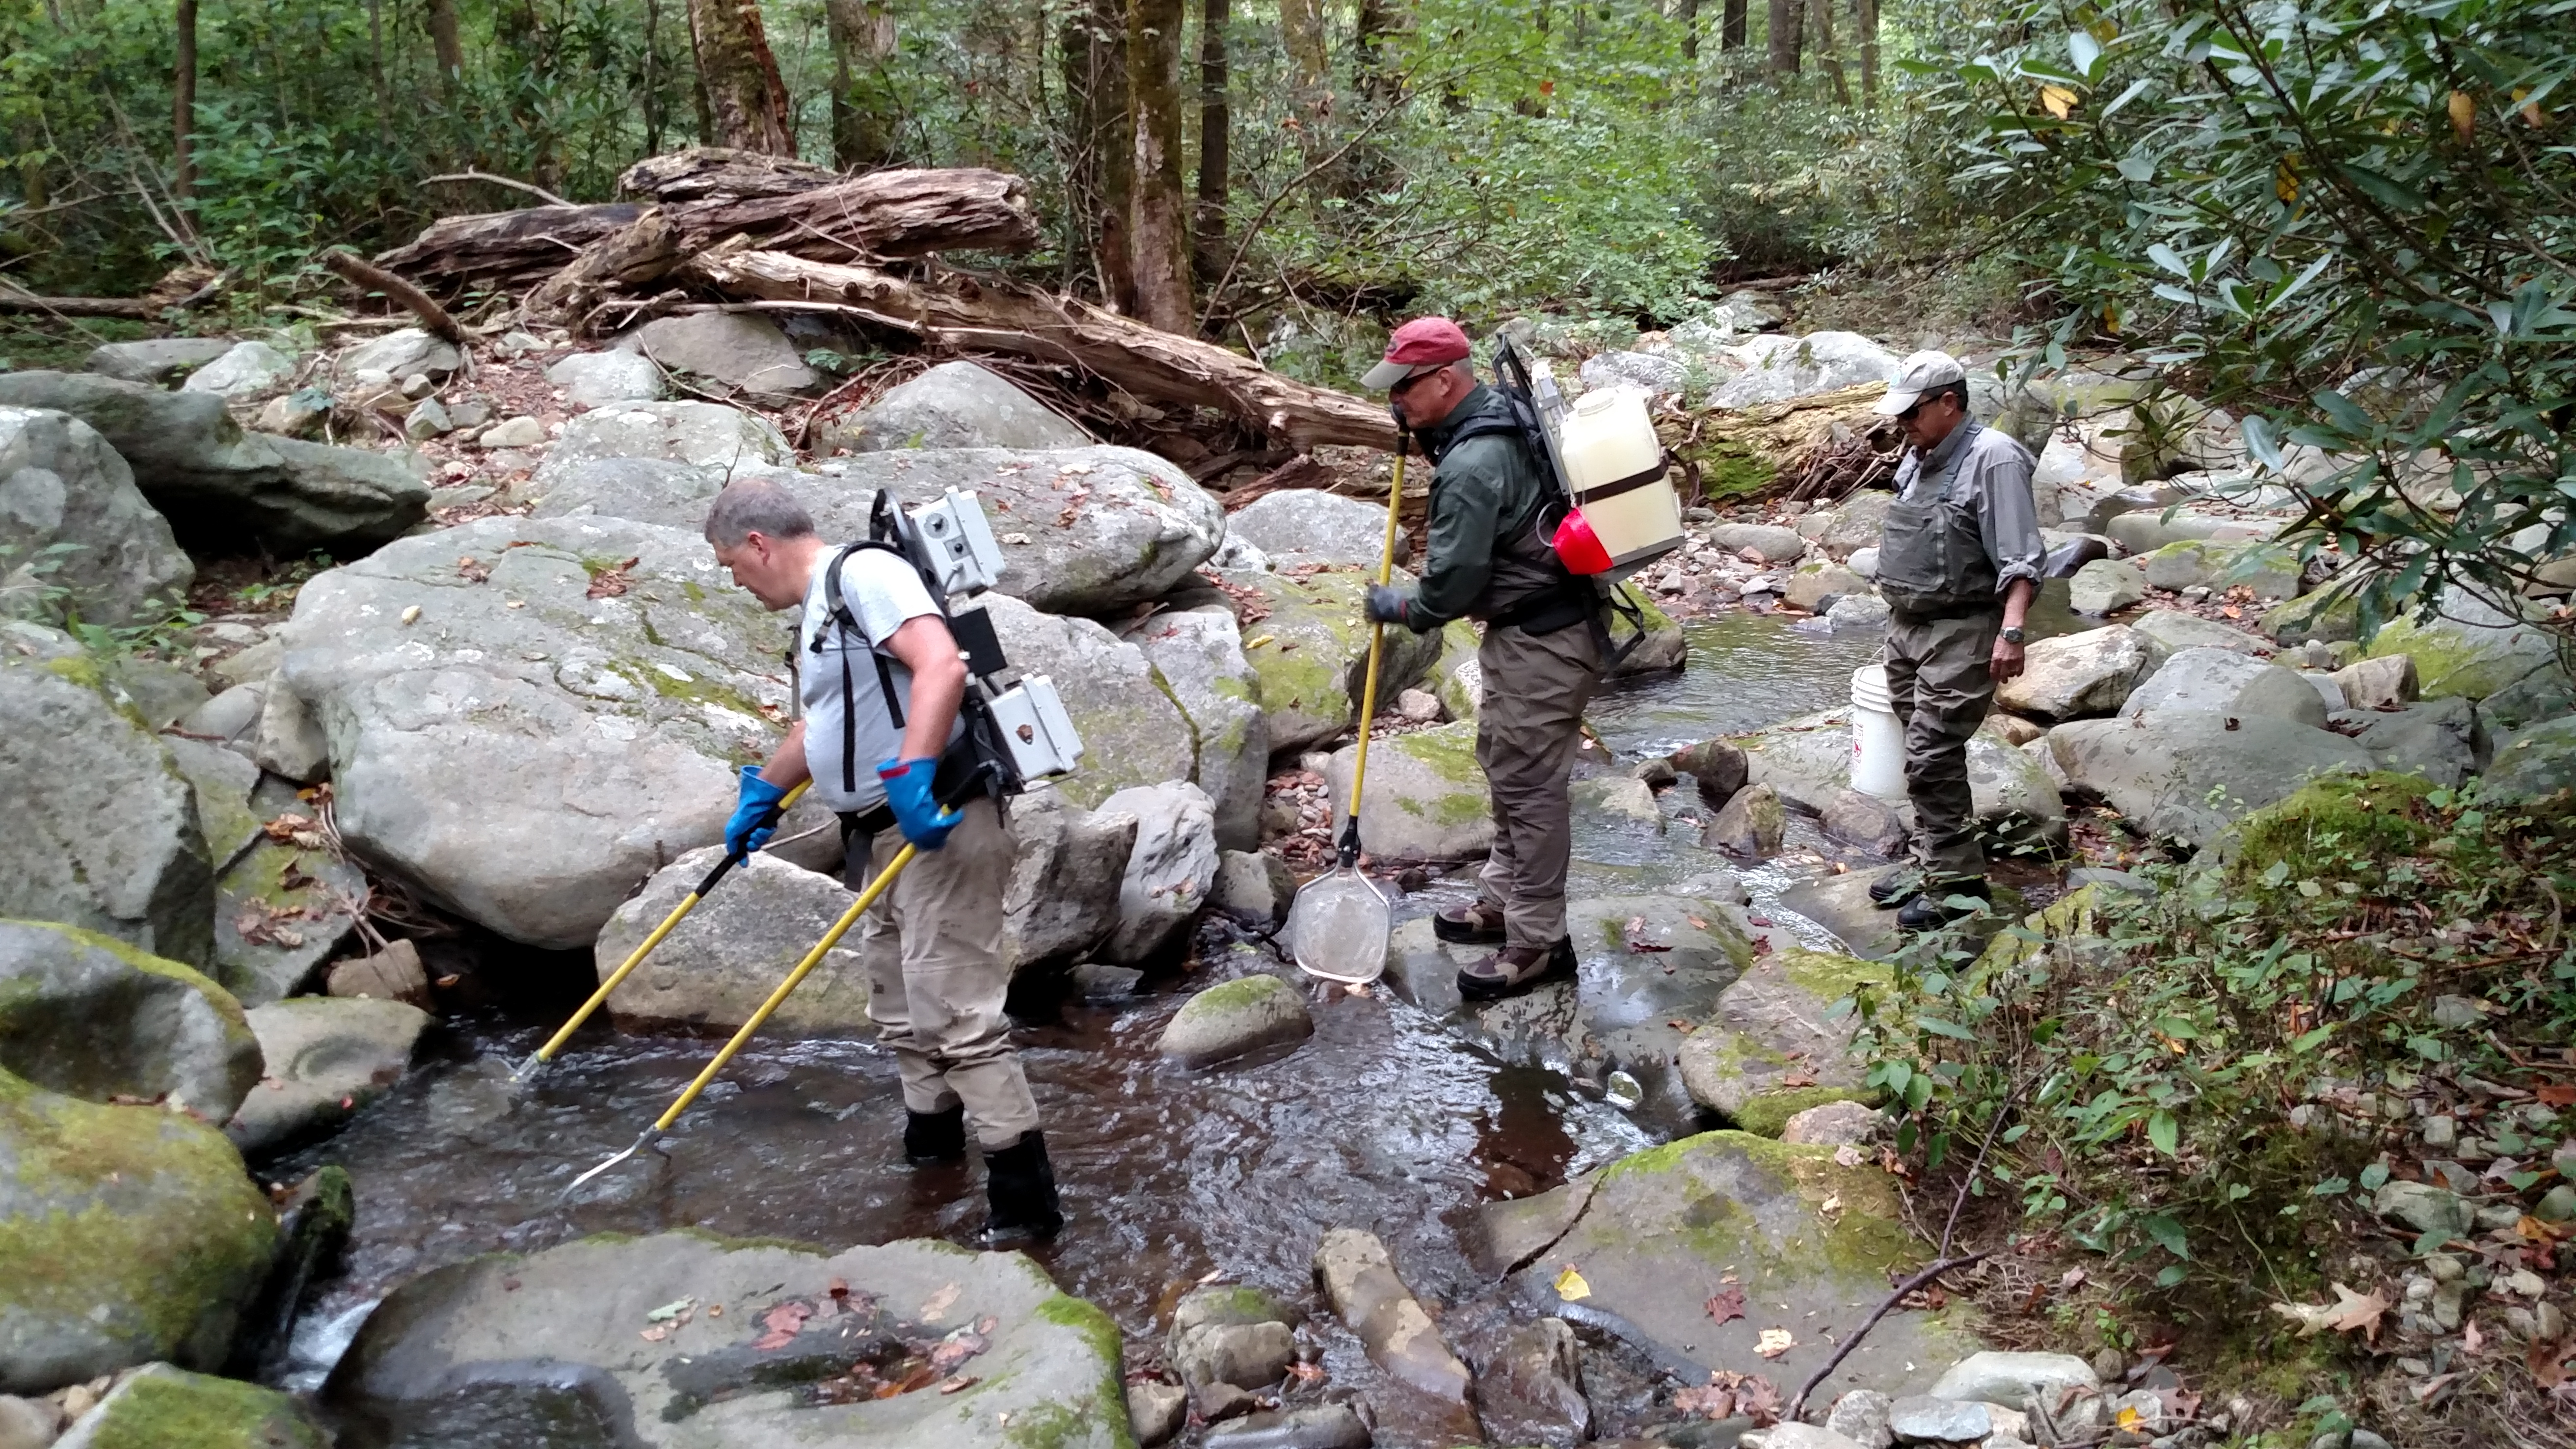 Matt Kulp, supervisory fishery biologist for GSMNP, leads a team of Trout Unlimited volunteers collecting brook trout in Cosby Creek stream habitat to move into the newly restored section of Lynn Camp Prong. Photo courtesy of NPS.